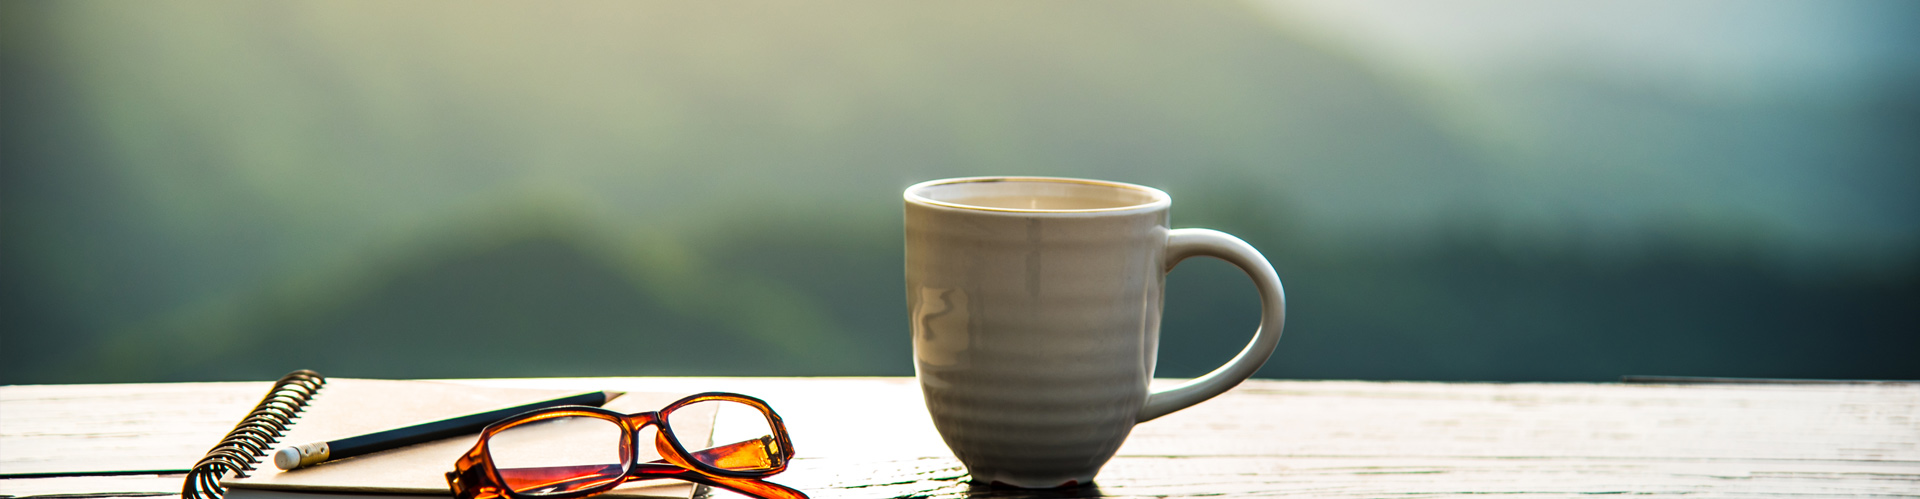 A close-up of a coffee mug, notepad, pencil and glasses resting on a wooden table outdoors